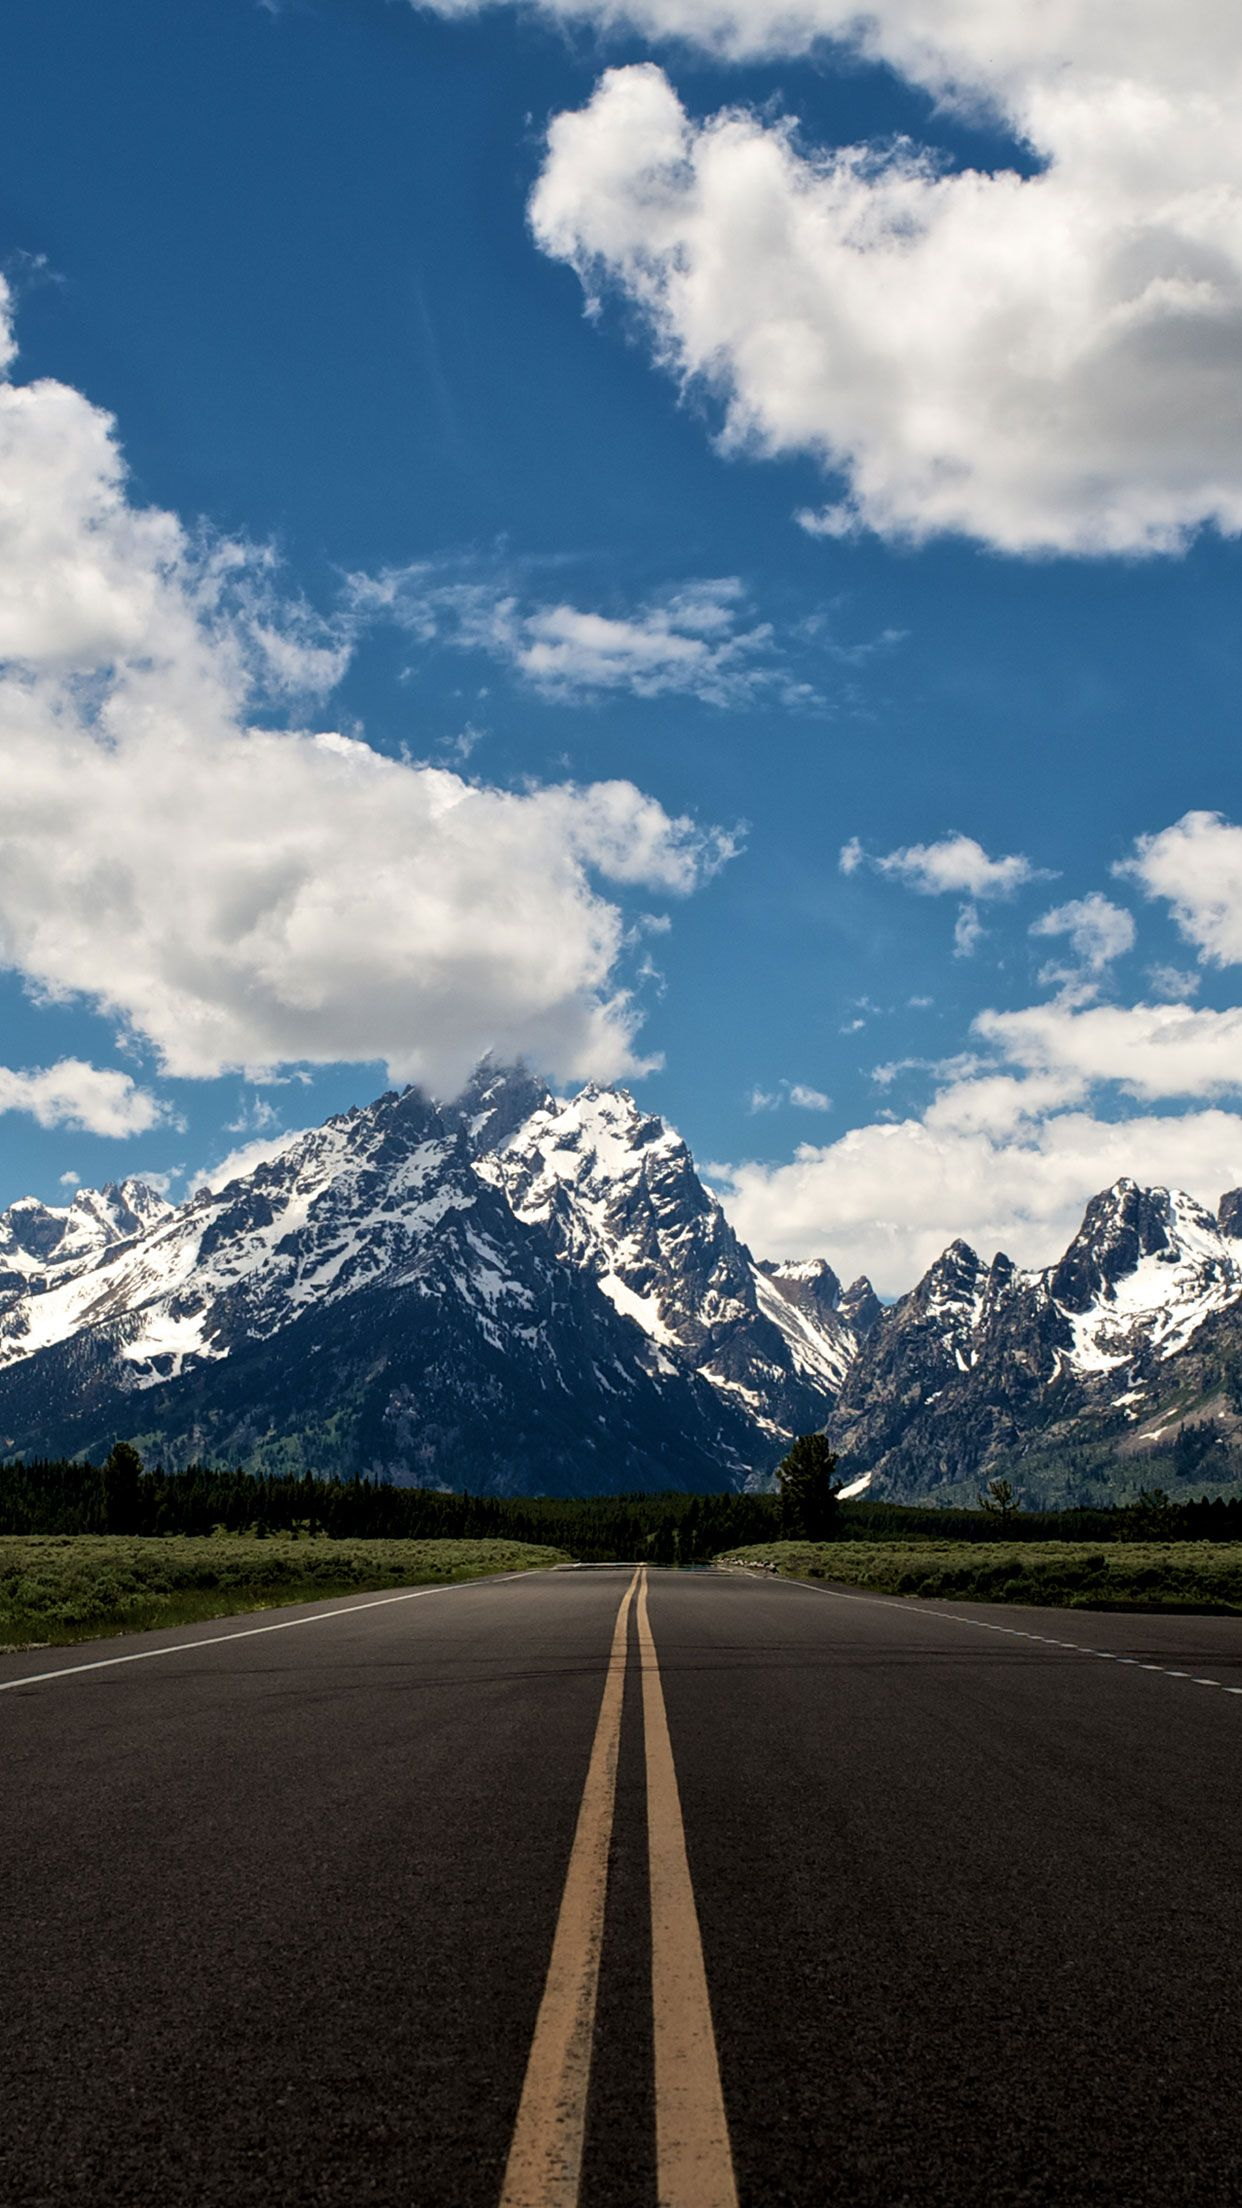 Mountain Road Nature Wallpaper For Iphone And Android More Like This On Wallzapp